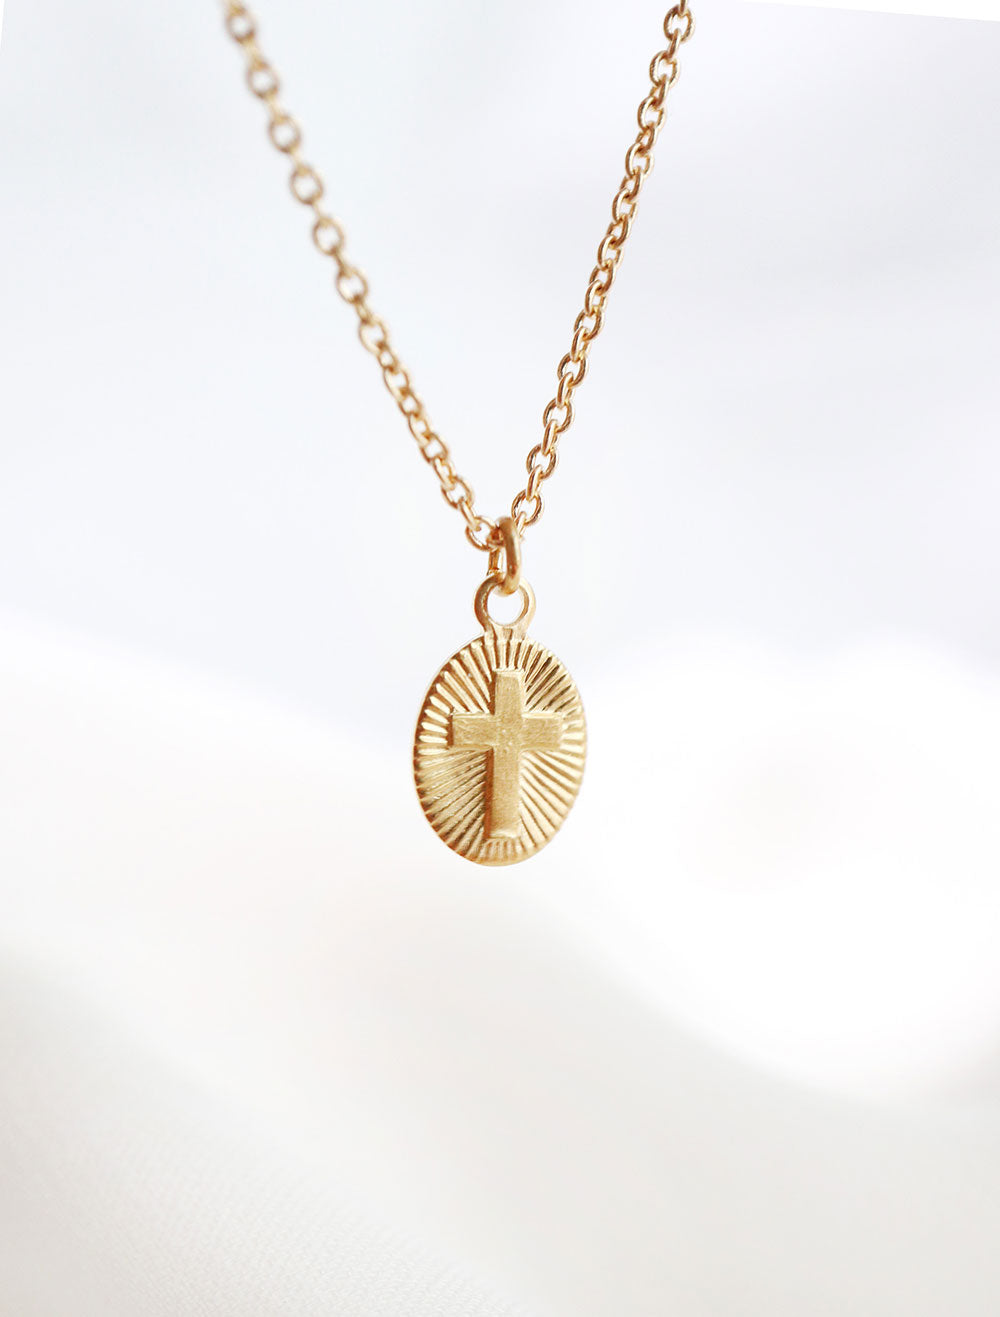 14k gold filled tiny starburst cross necklace